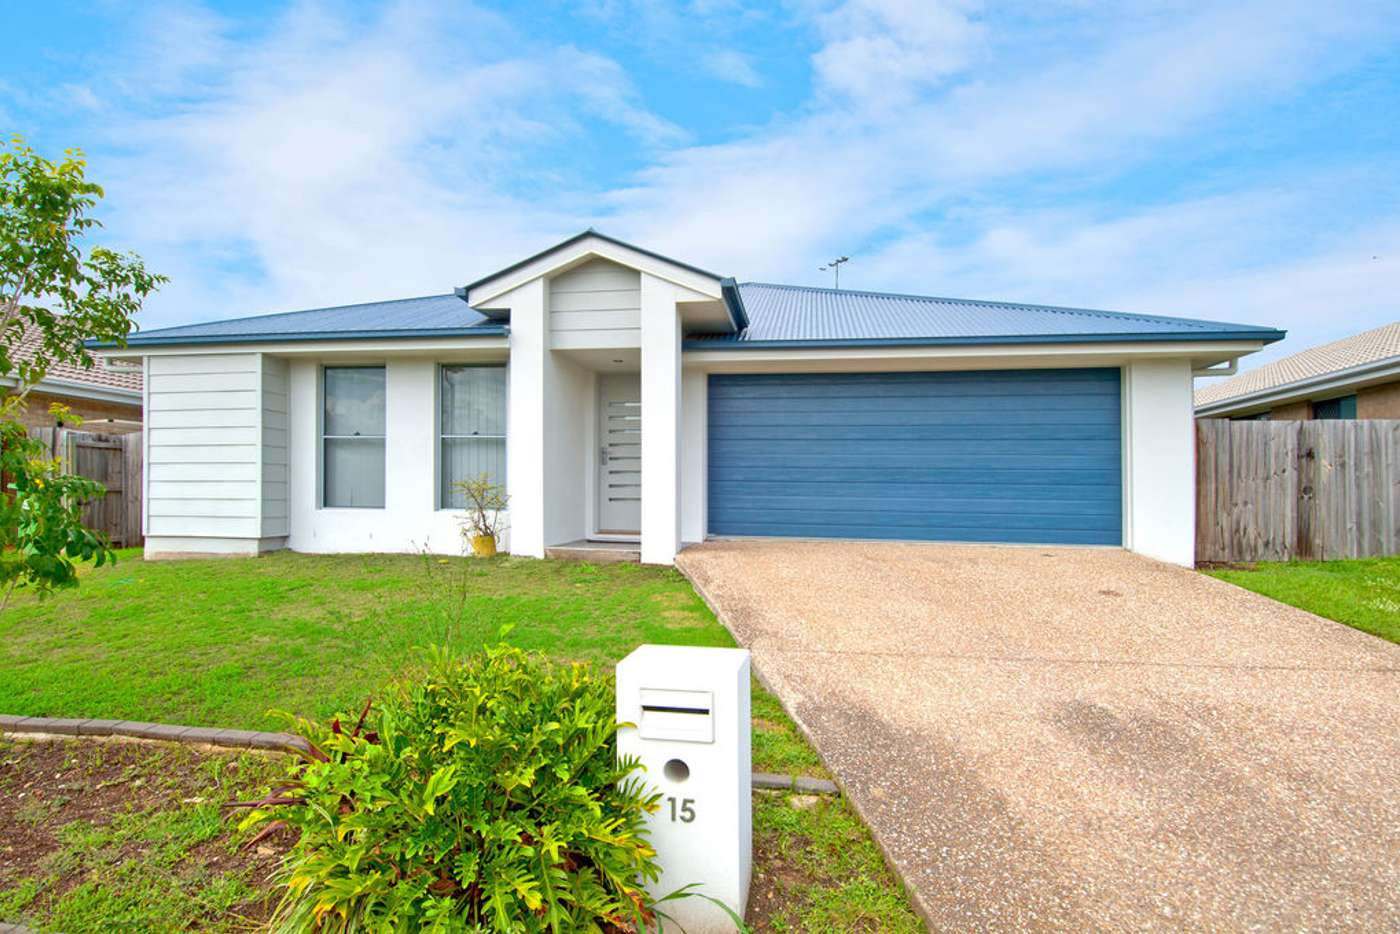 Main view of Homely house listing, 15 Wilkie Street, Bannockburn QLD 4207